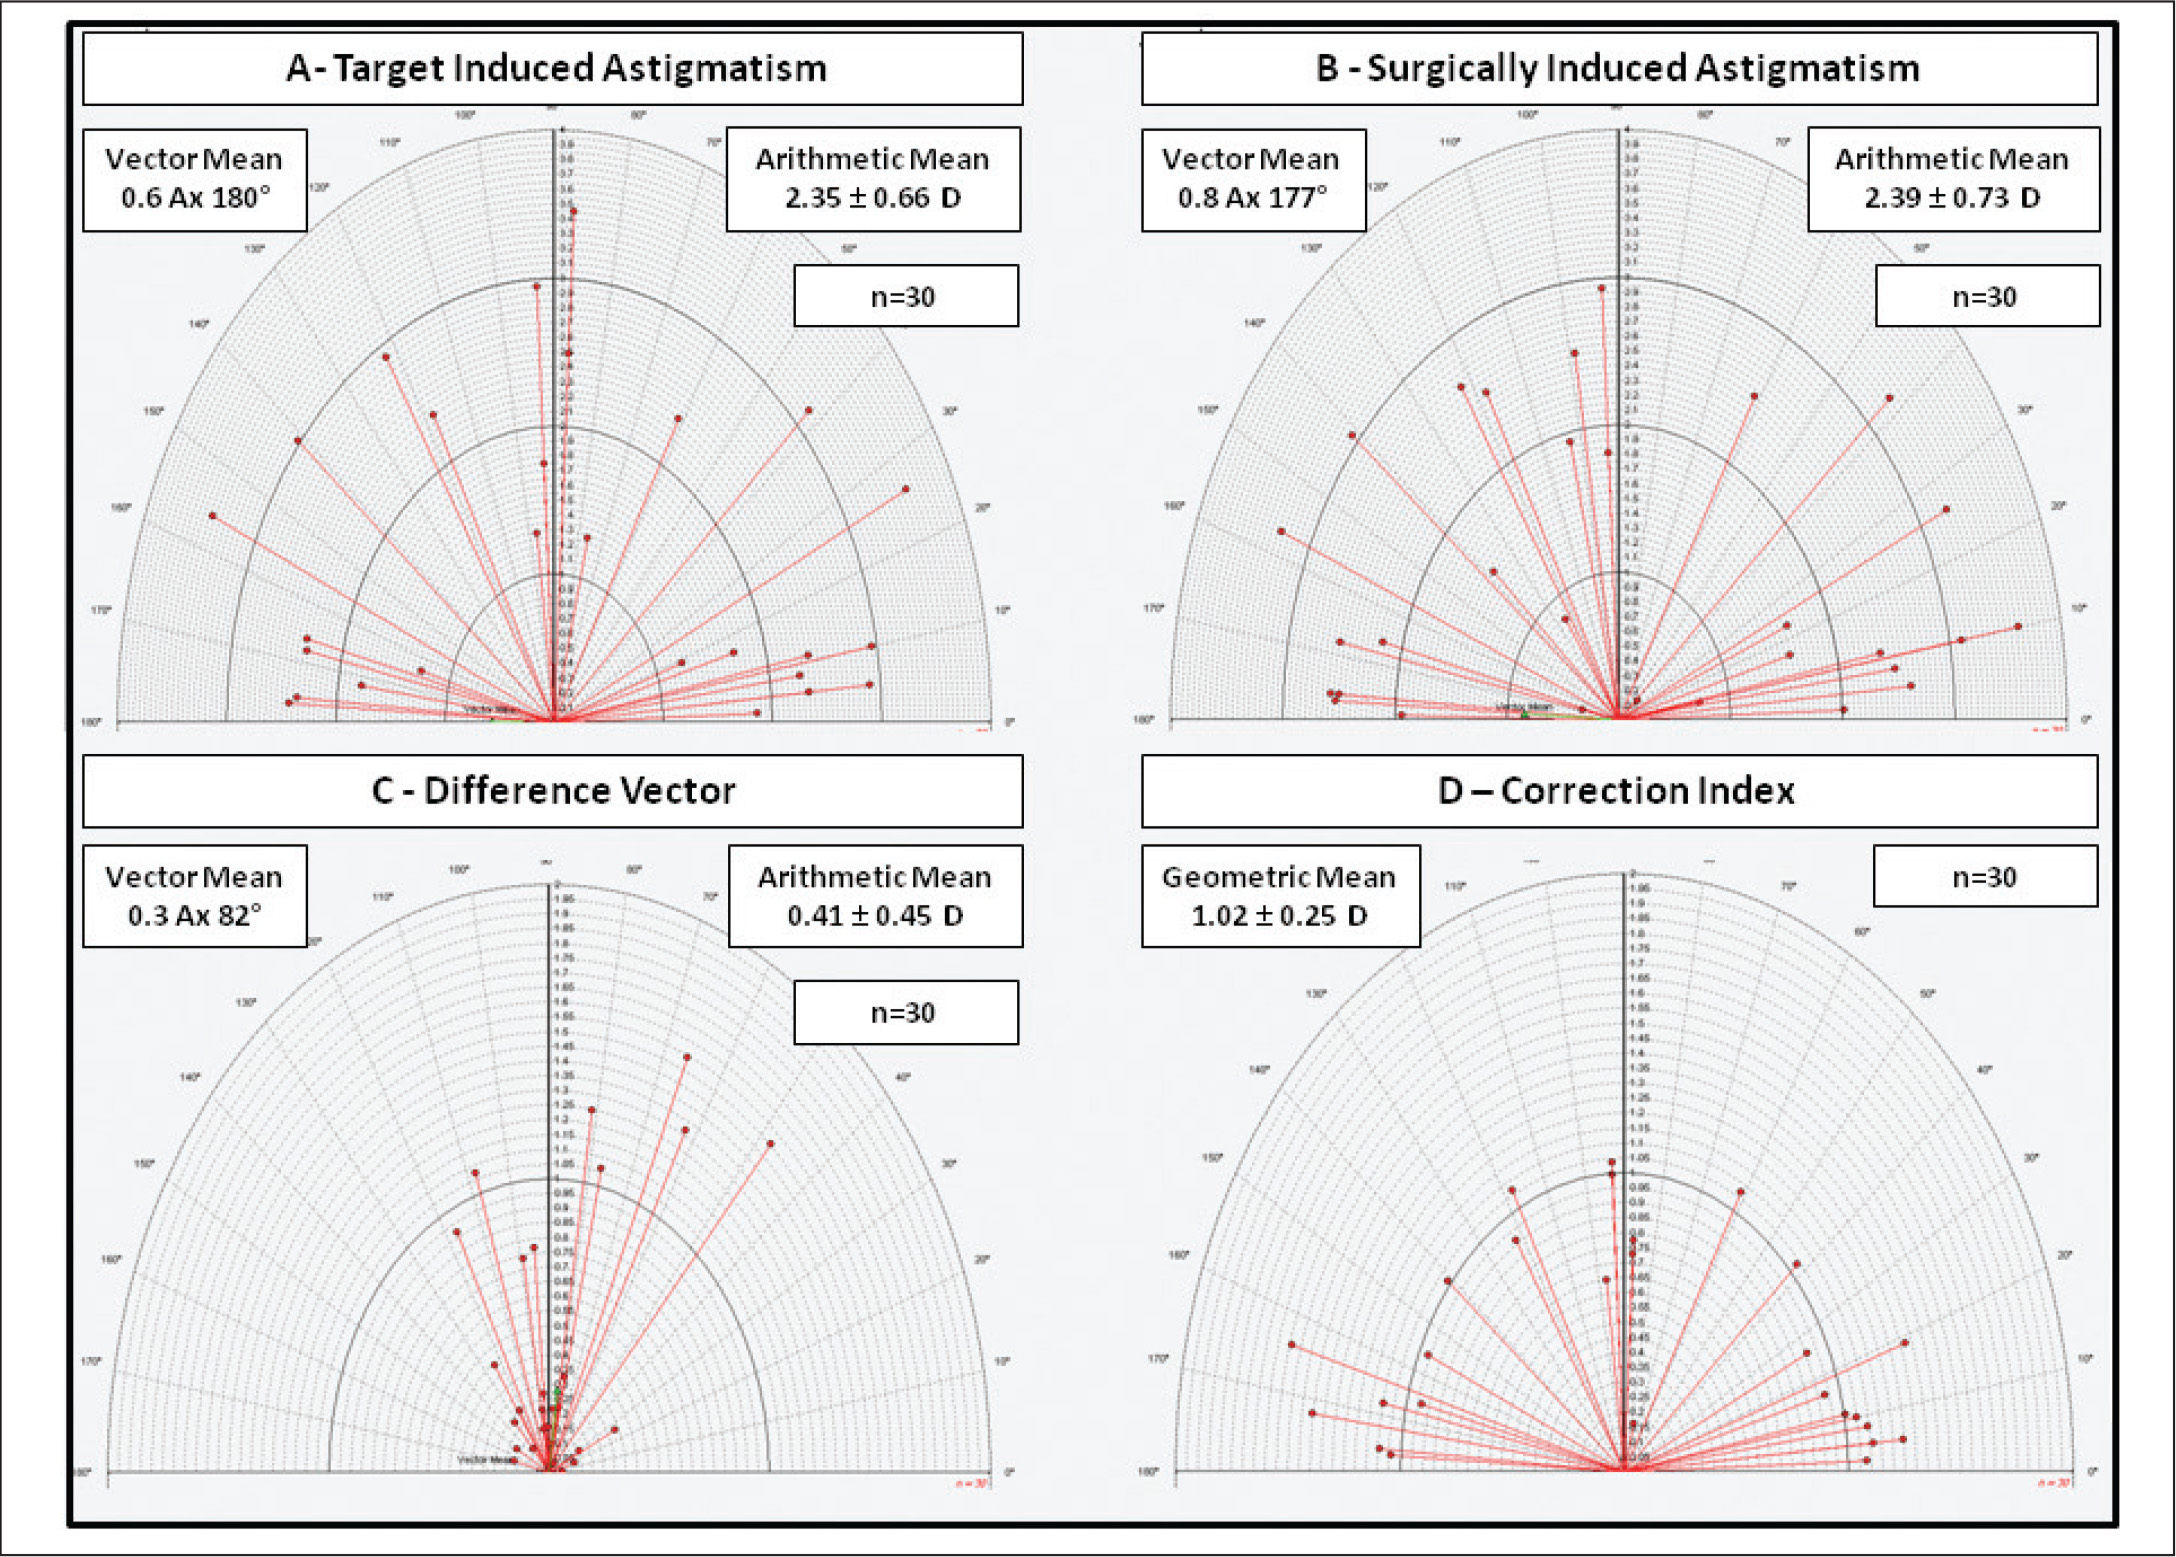 Vector analysis of refractive astigmatism 12 months after toric intraocular lens implantation.